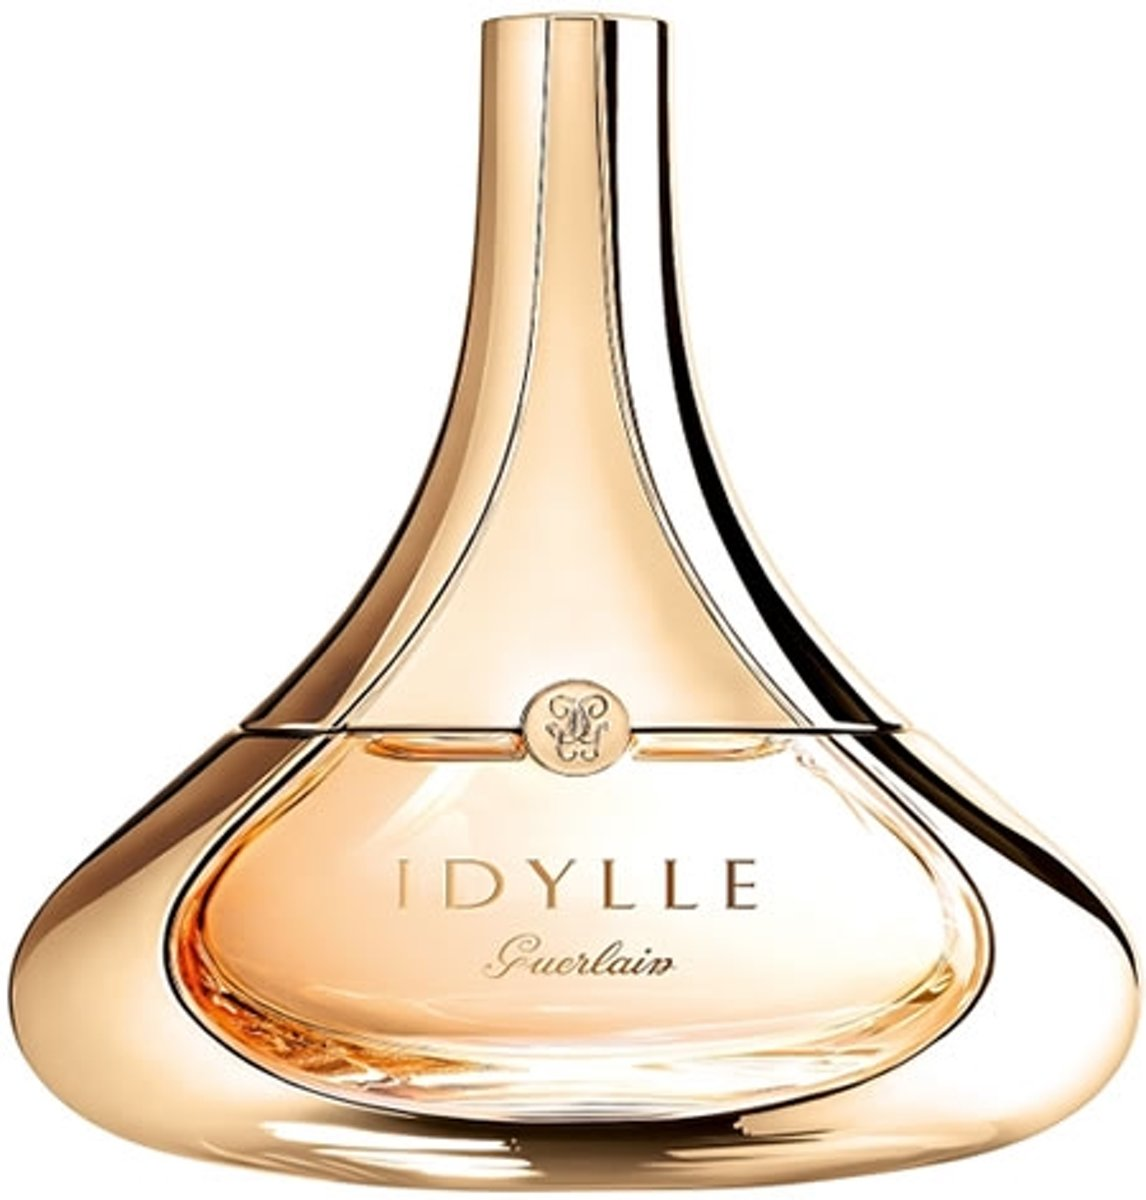 MULTI BUNDEL 2 stuks Guerlain Idylle Eau De Perfume Spray 35ml